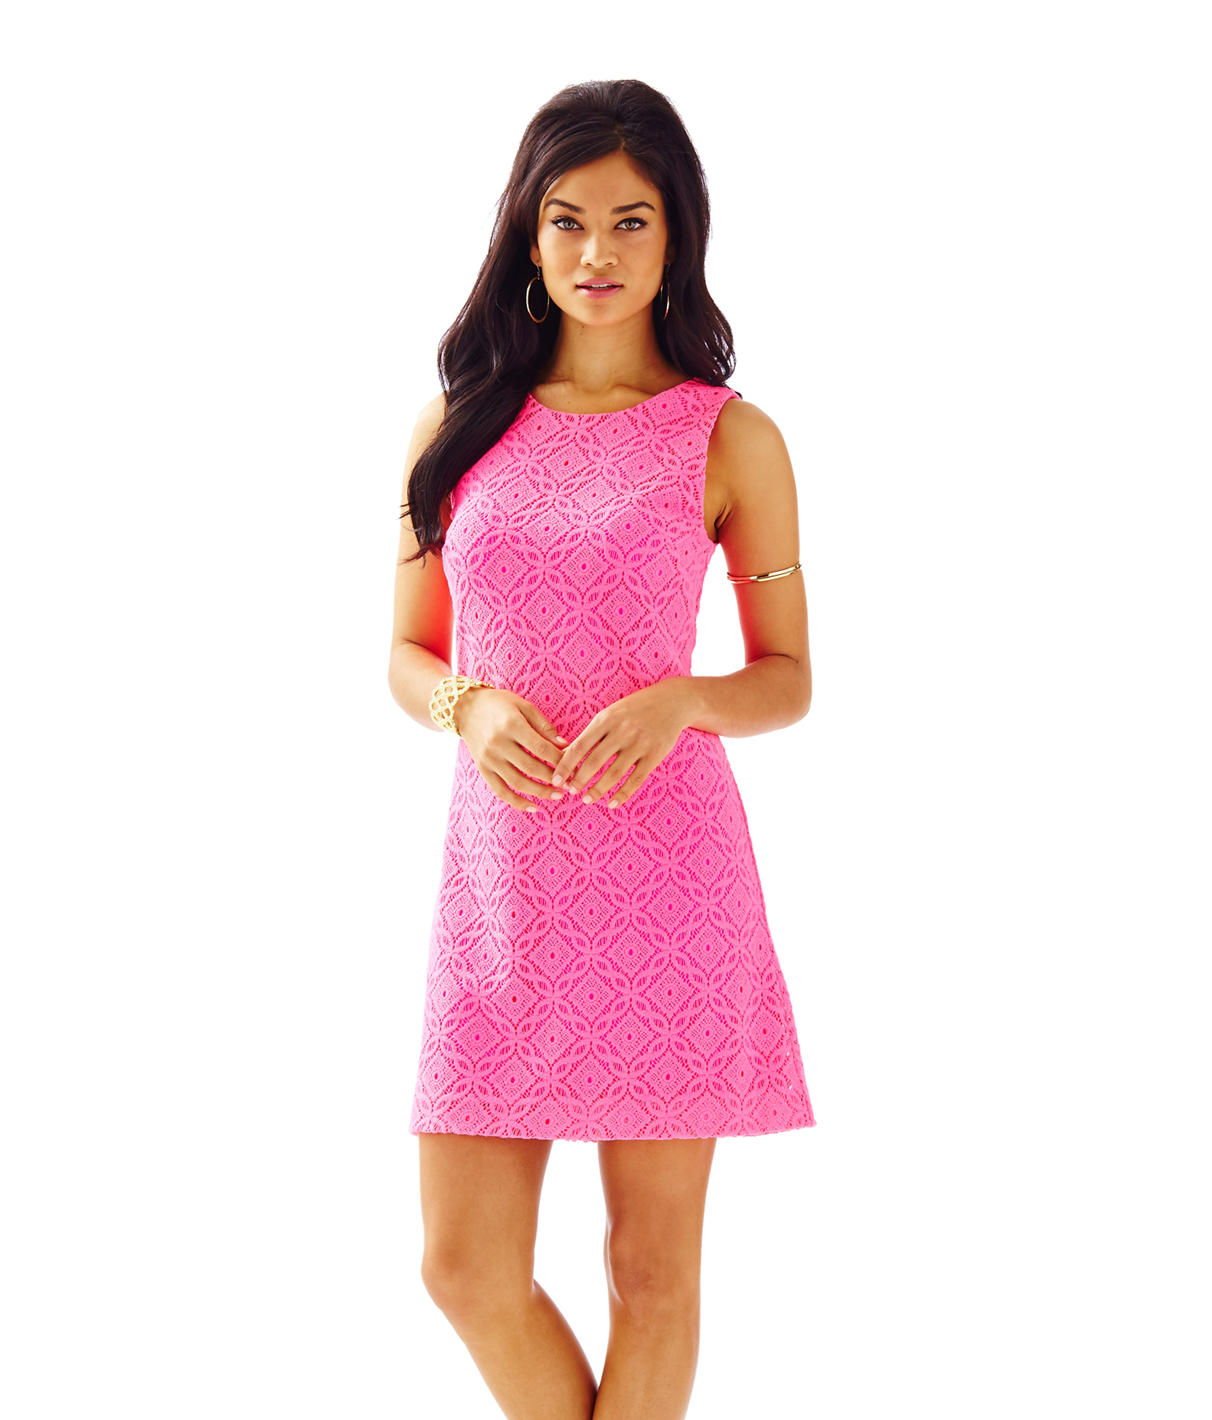 Lilly Pulitzer Callie Knit Lace Shift Dress